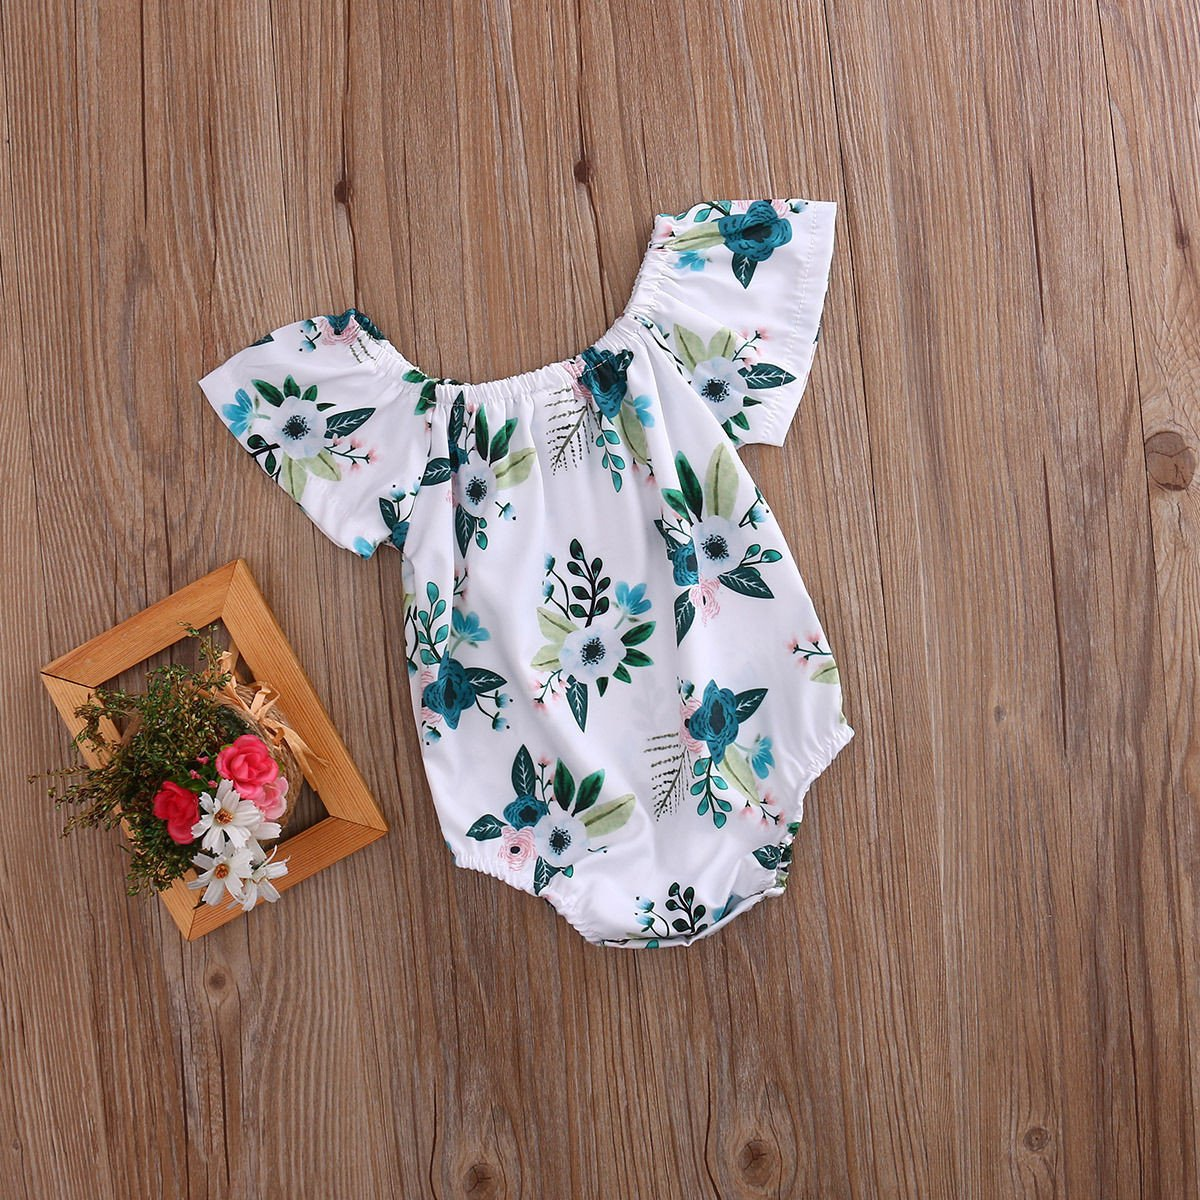 White Poppy Romper - Darling Little One